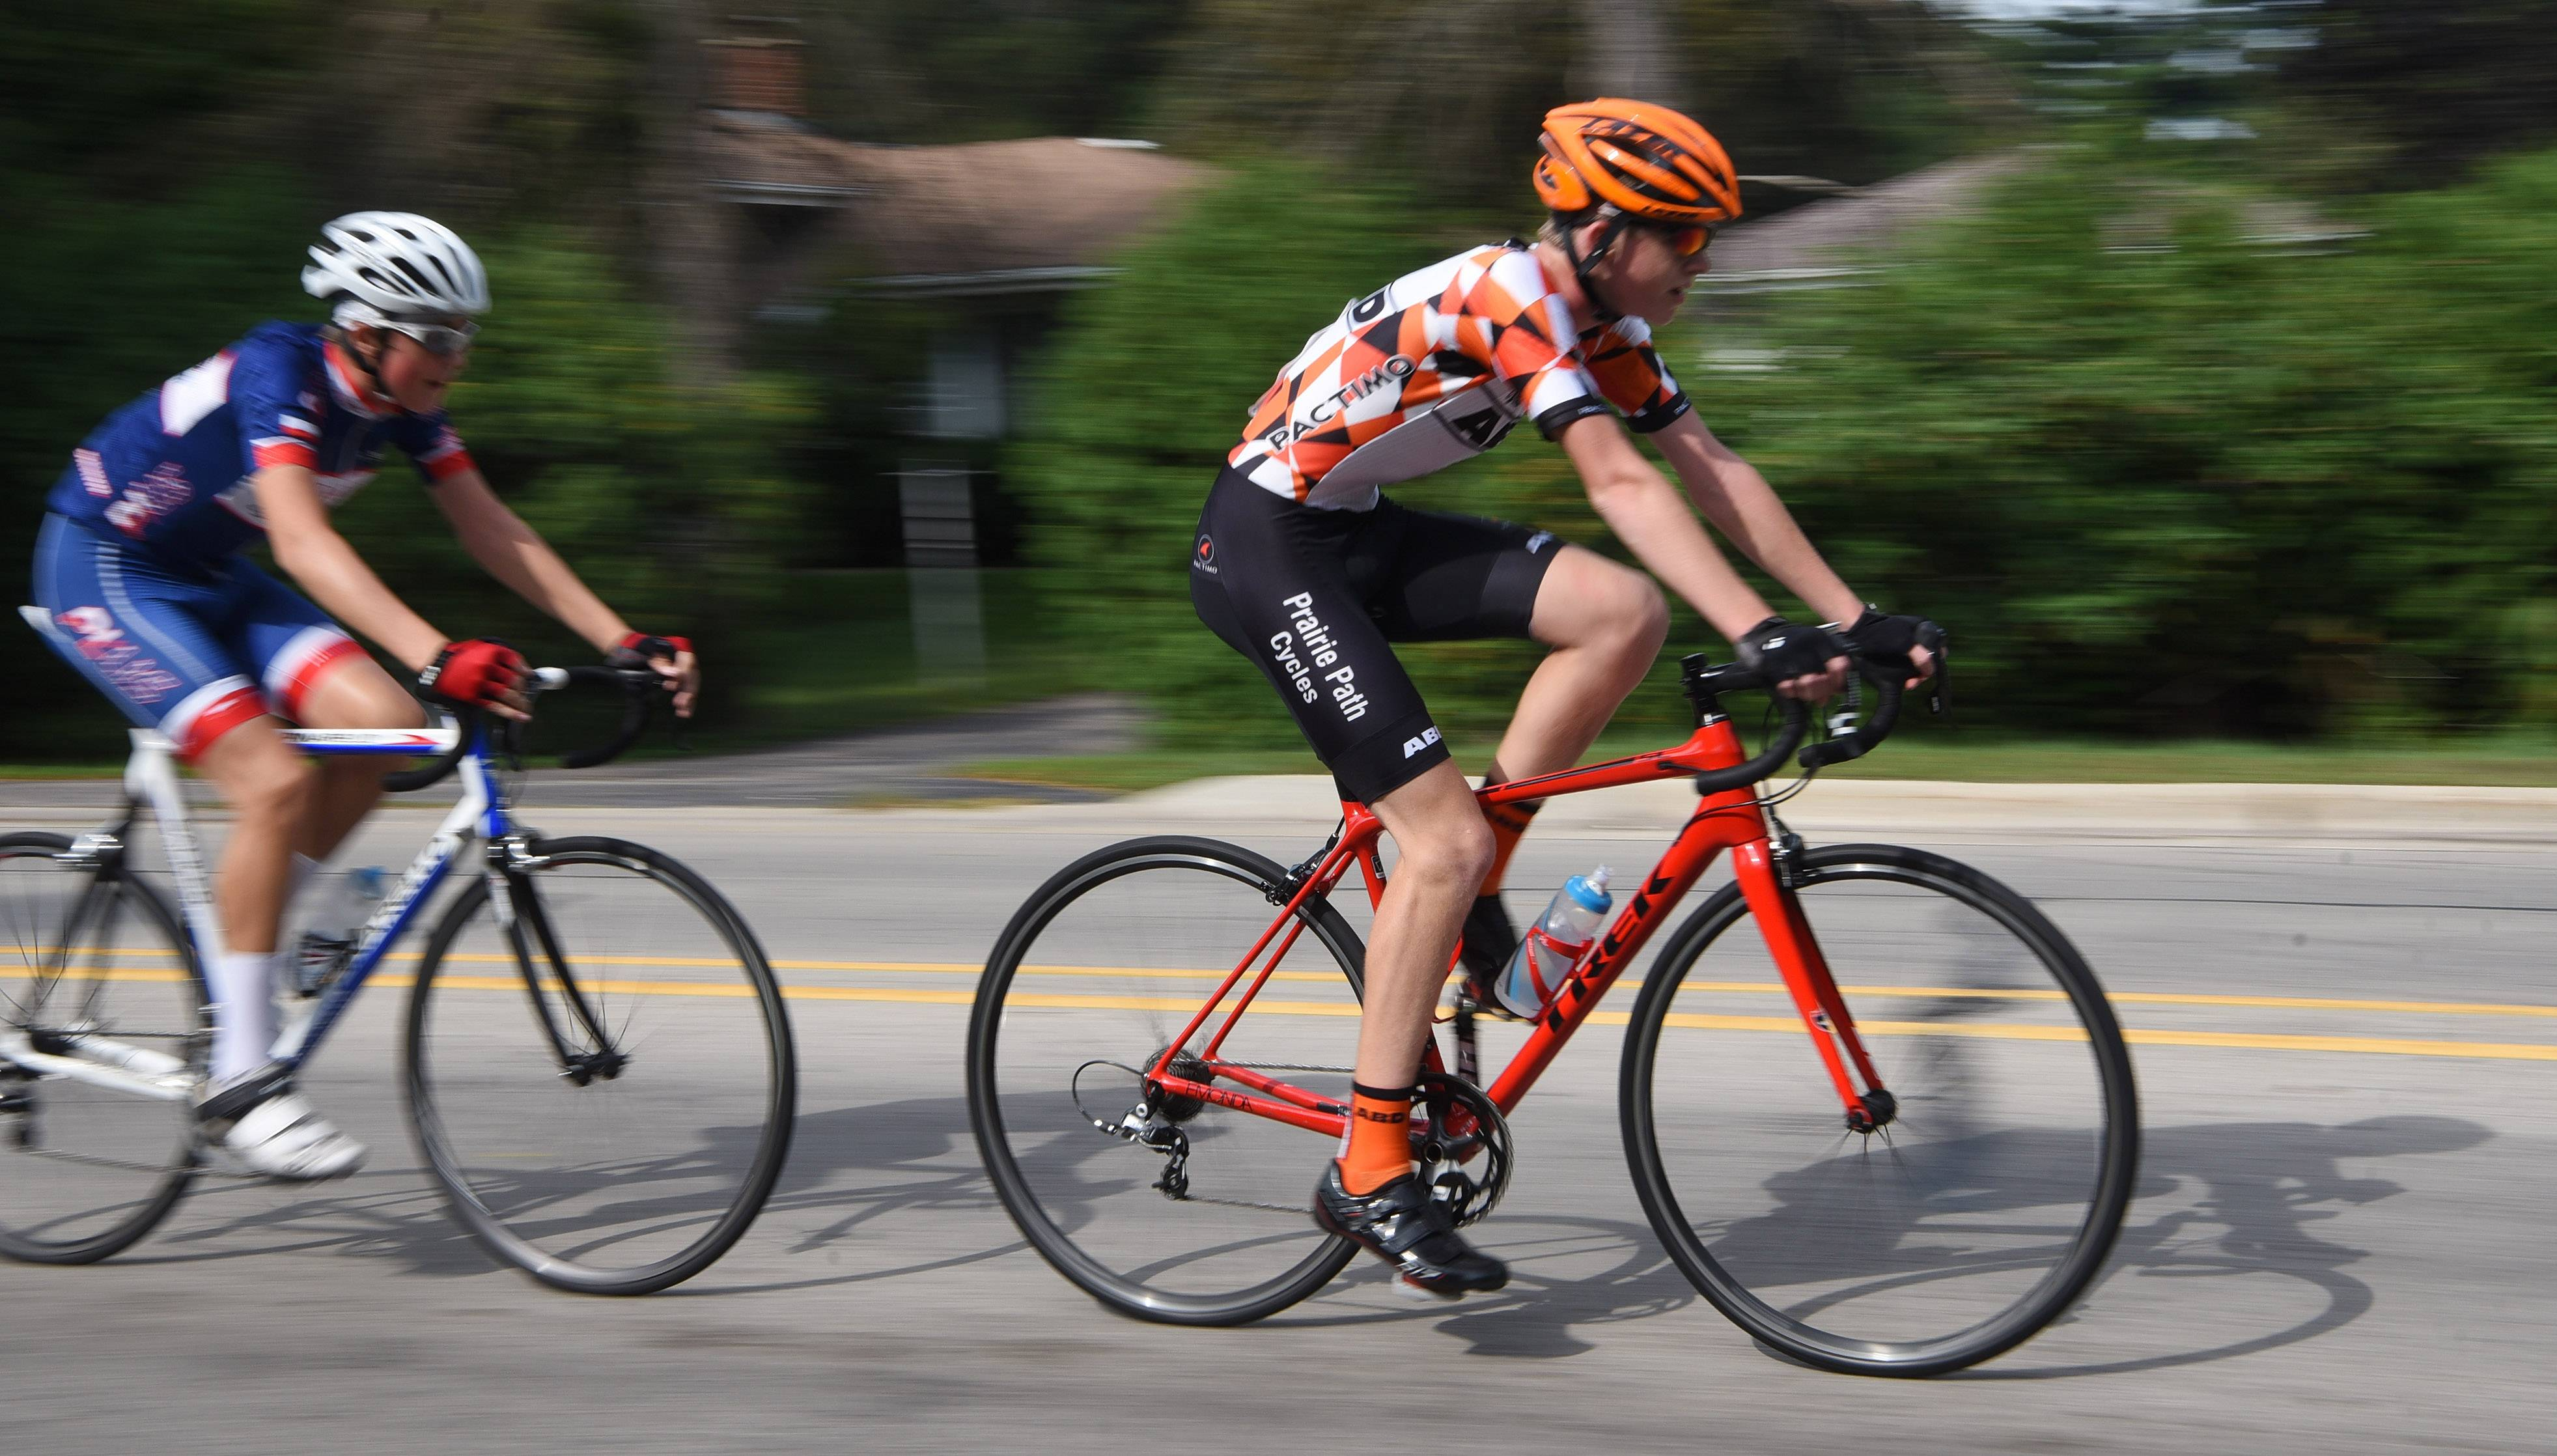 Will Holzhauer, right, of Geneva stays just ahead of David Kosela of Downers Grove in the USAC-Junior Boys 9-14 category at the Winfield Criterium bicycle races Sunday.